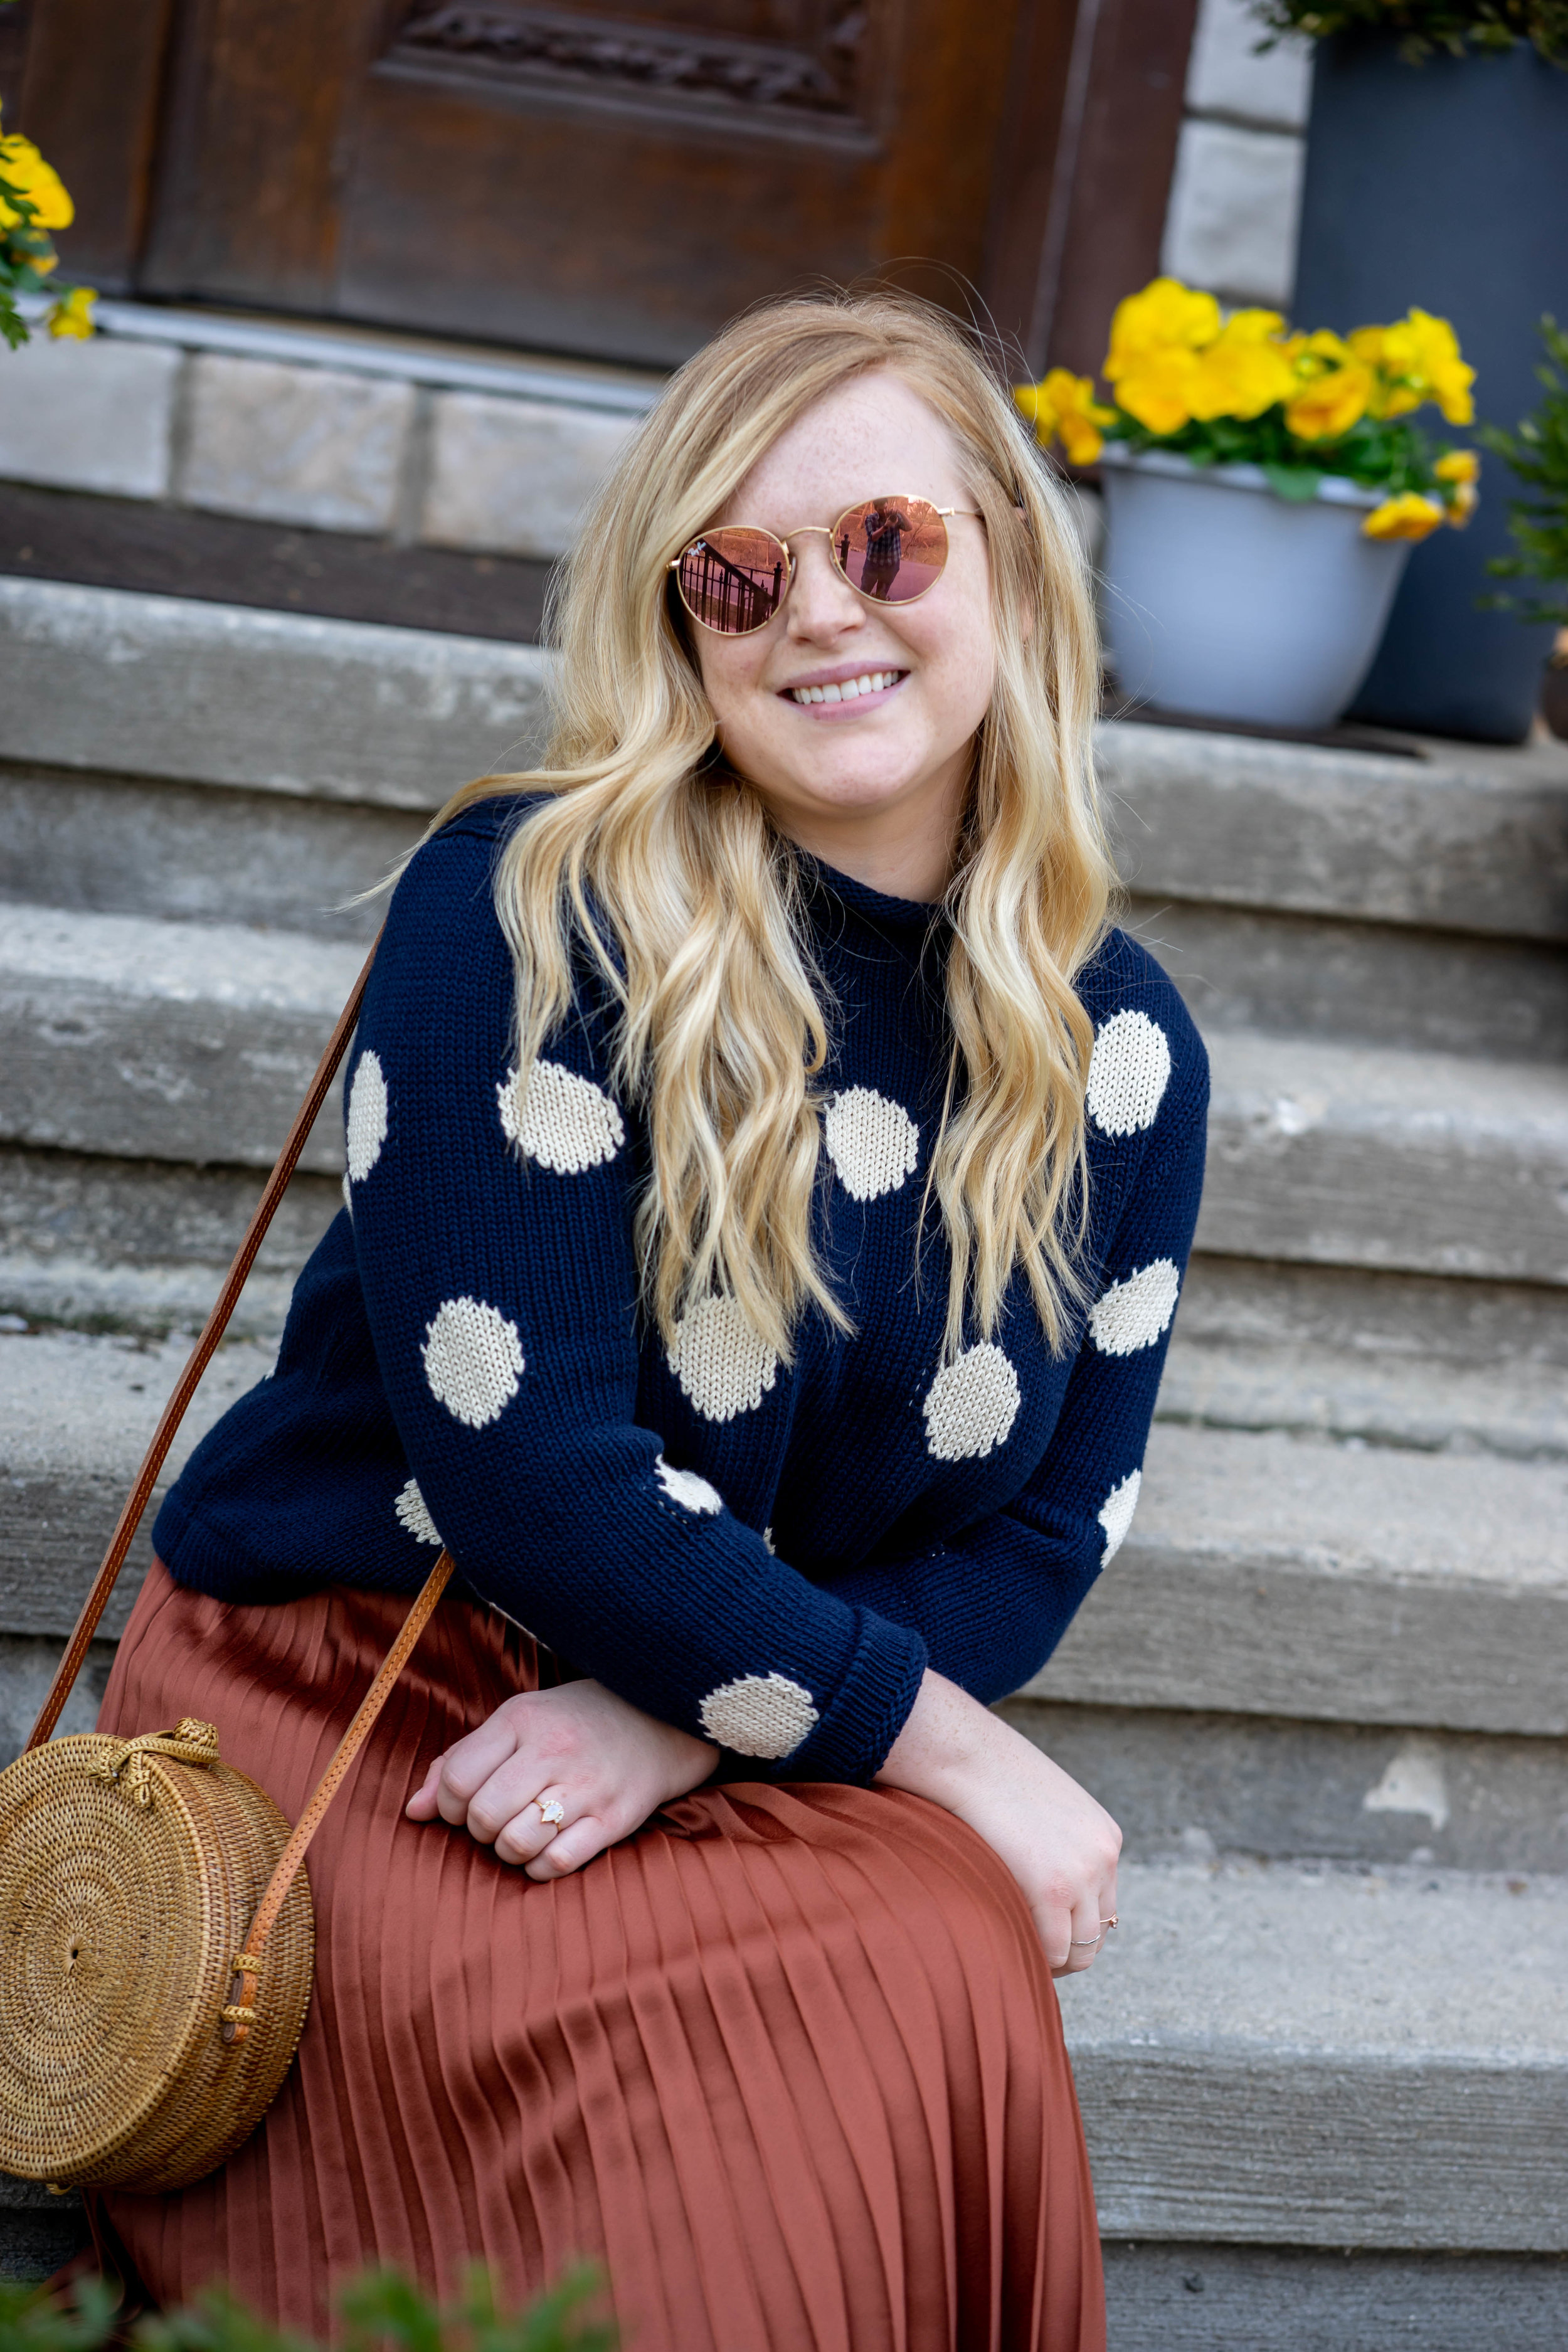 Maggie a la Mode - Sweater Spring Transition J Crew Rollneck Polka Dot Cropped Sweater, Sezane Dino Skirt, Via Spiga Forte Leather Block Heel Sandal